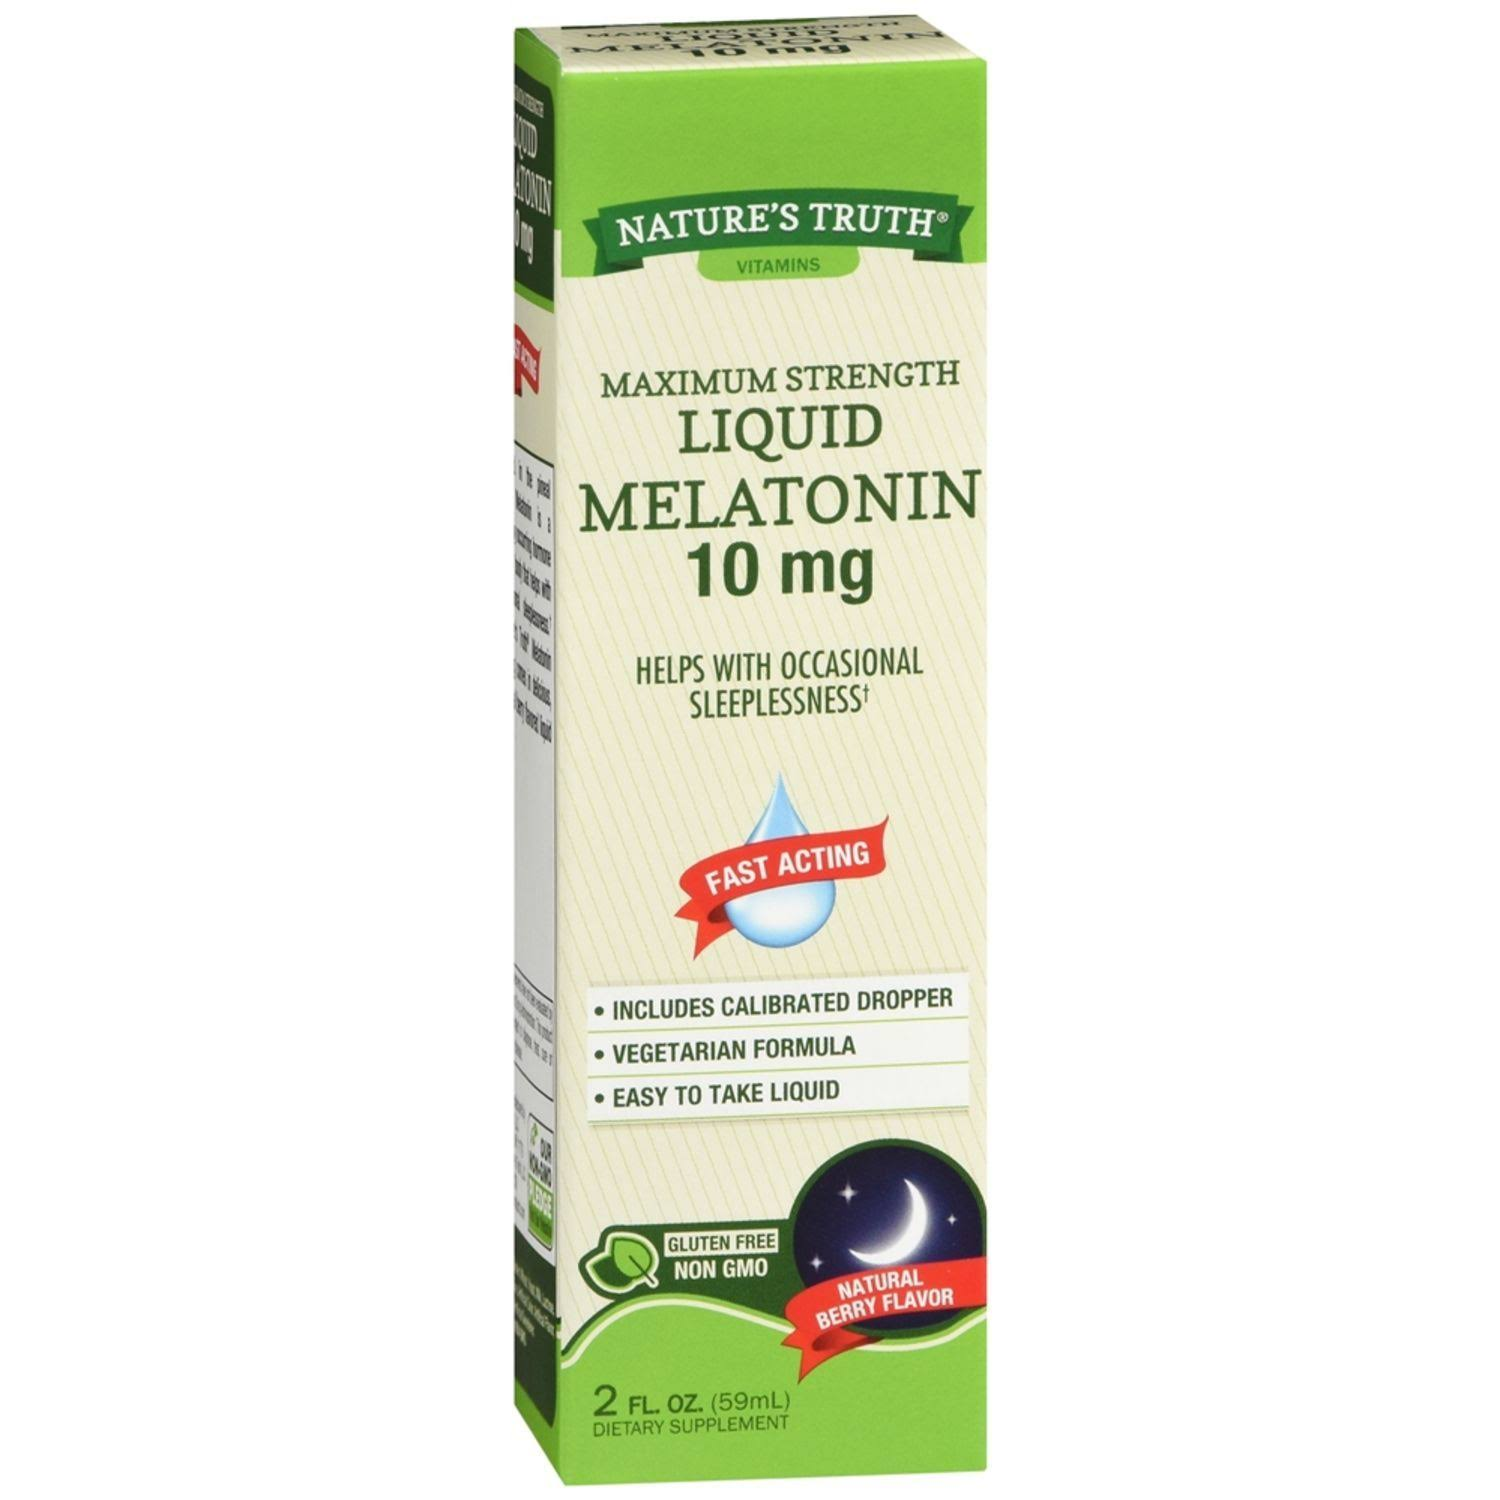 Natures Truth Vitamins Melatonin, Maximum Strength, 10 mg, Liquid, Natural Berry Flavor - 2 fl oz